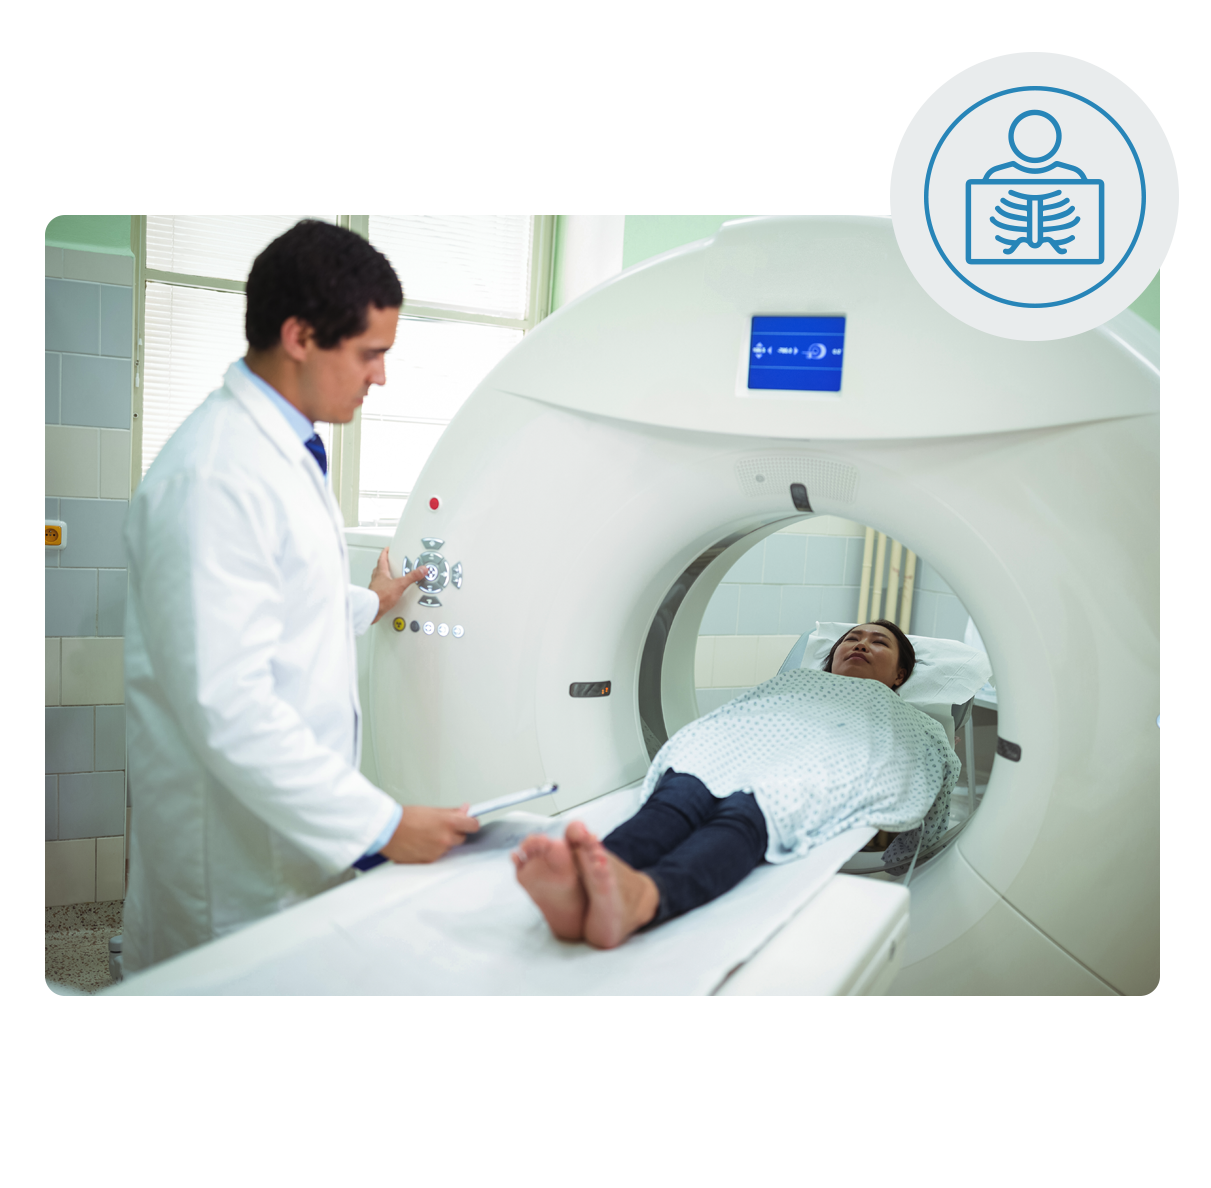 Woman receiving diagnostic imaging with male physician present for care